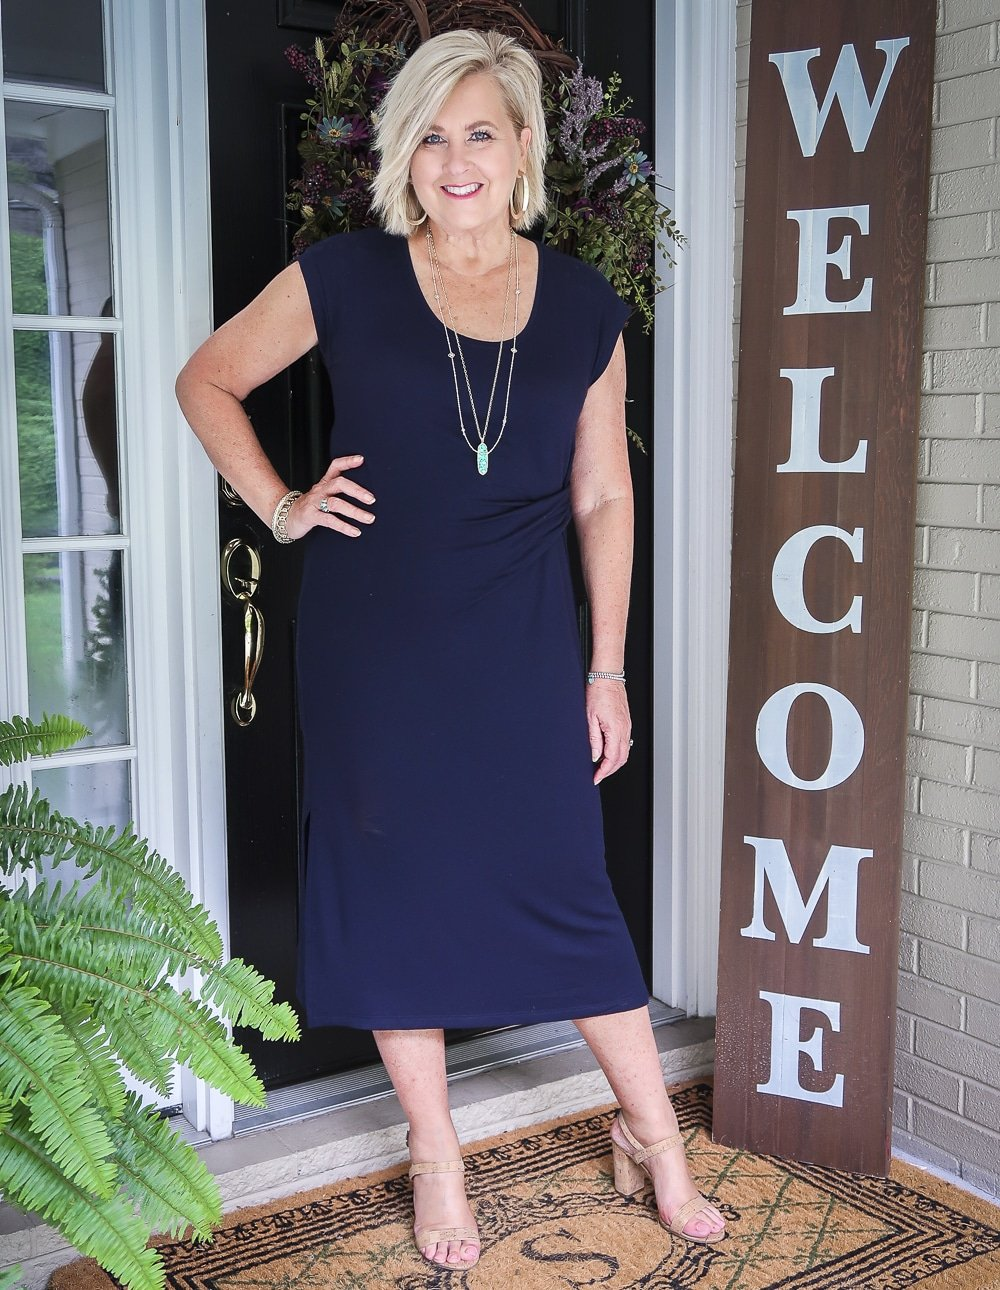 Fashion Blogger 50 Is Not Old is wearing a navy midi dress with cork heels